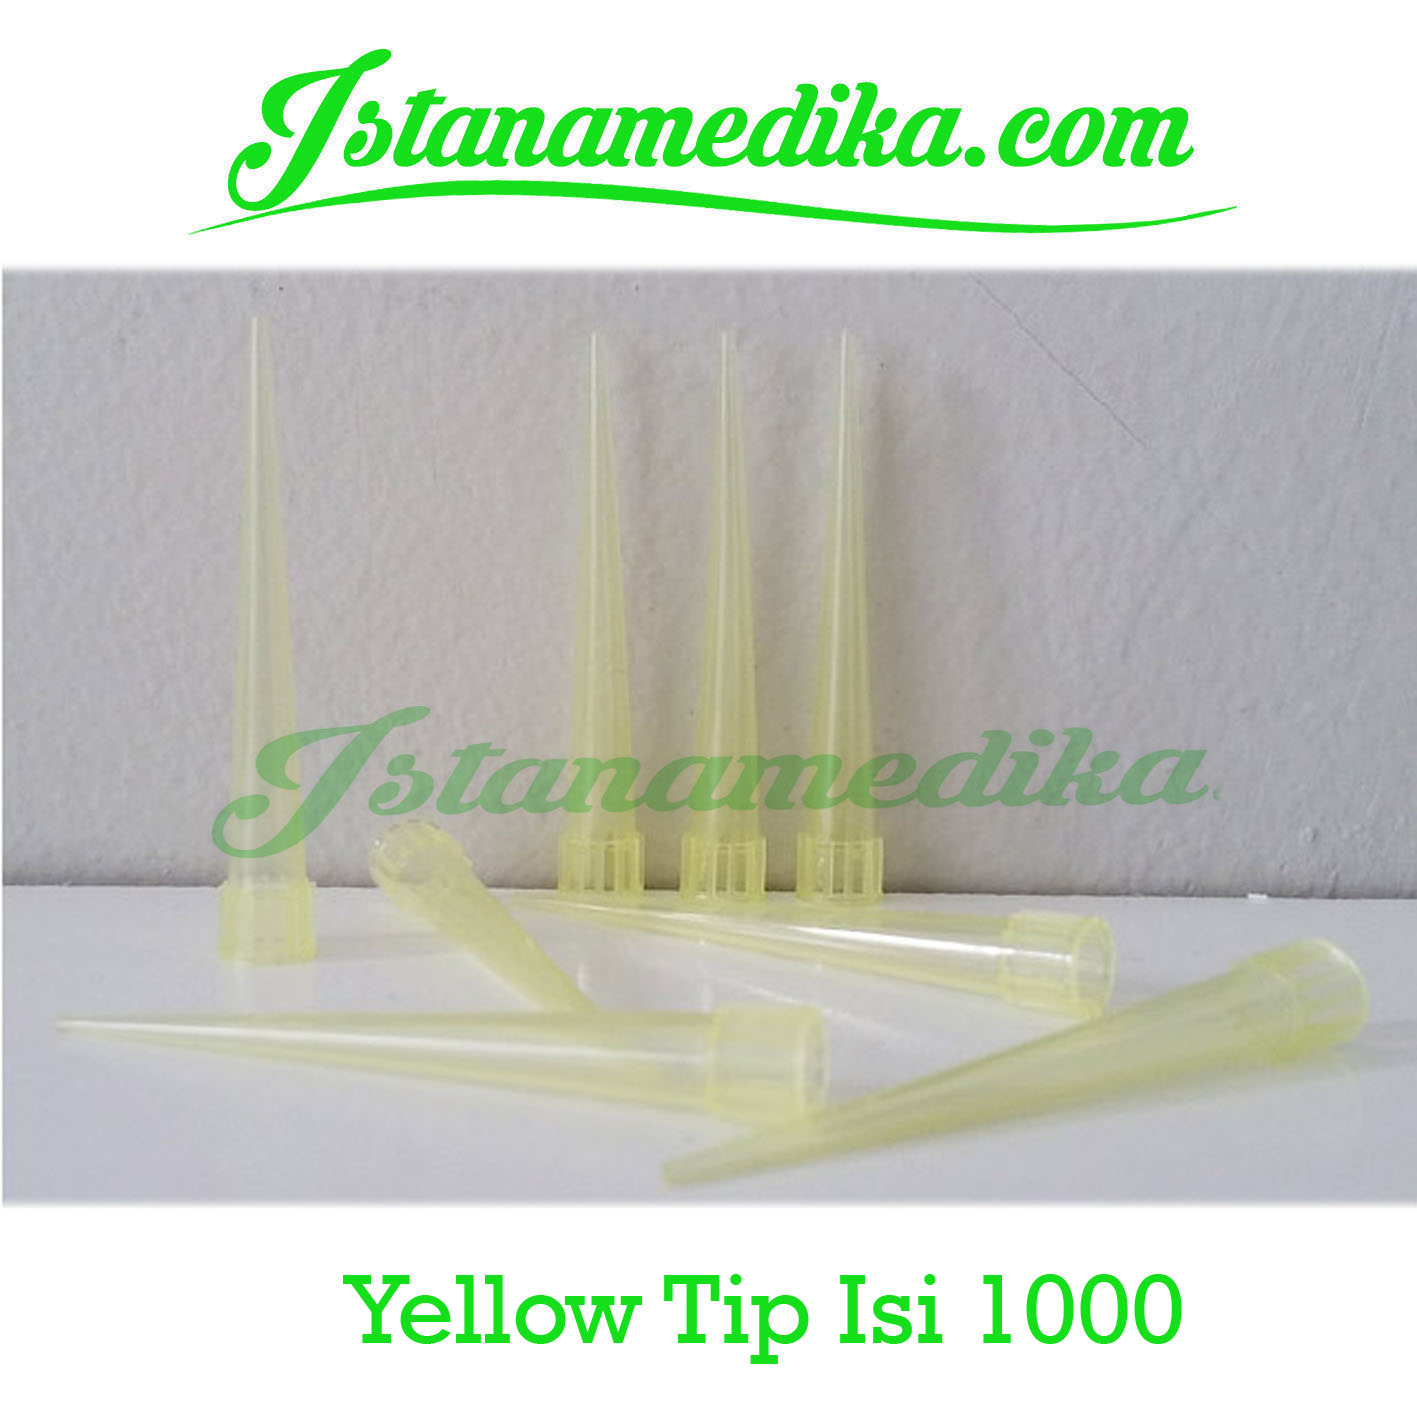 Yellow Tip Isi 1000